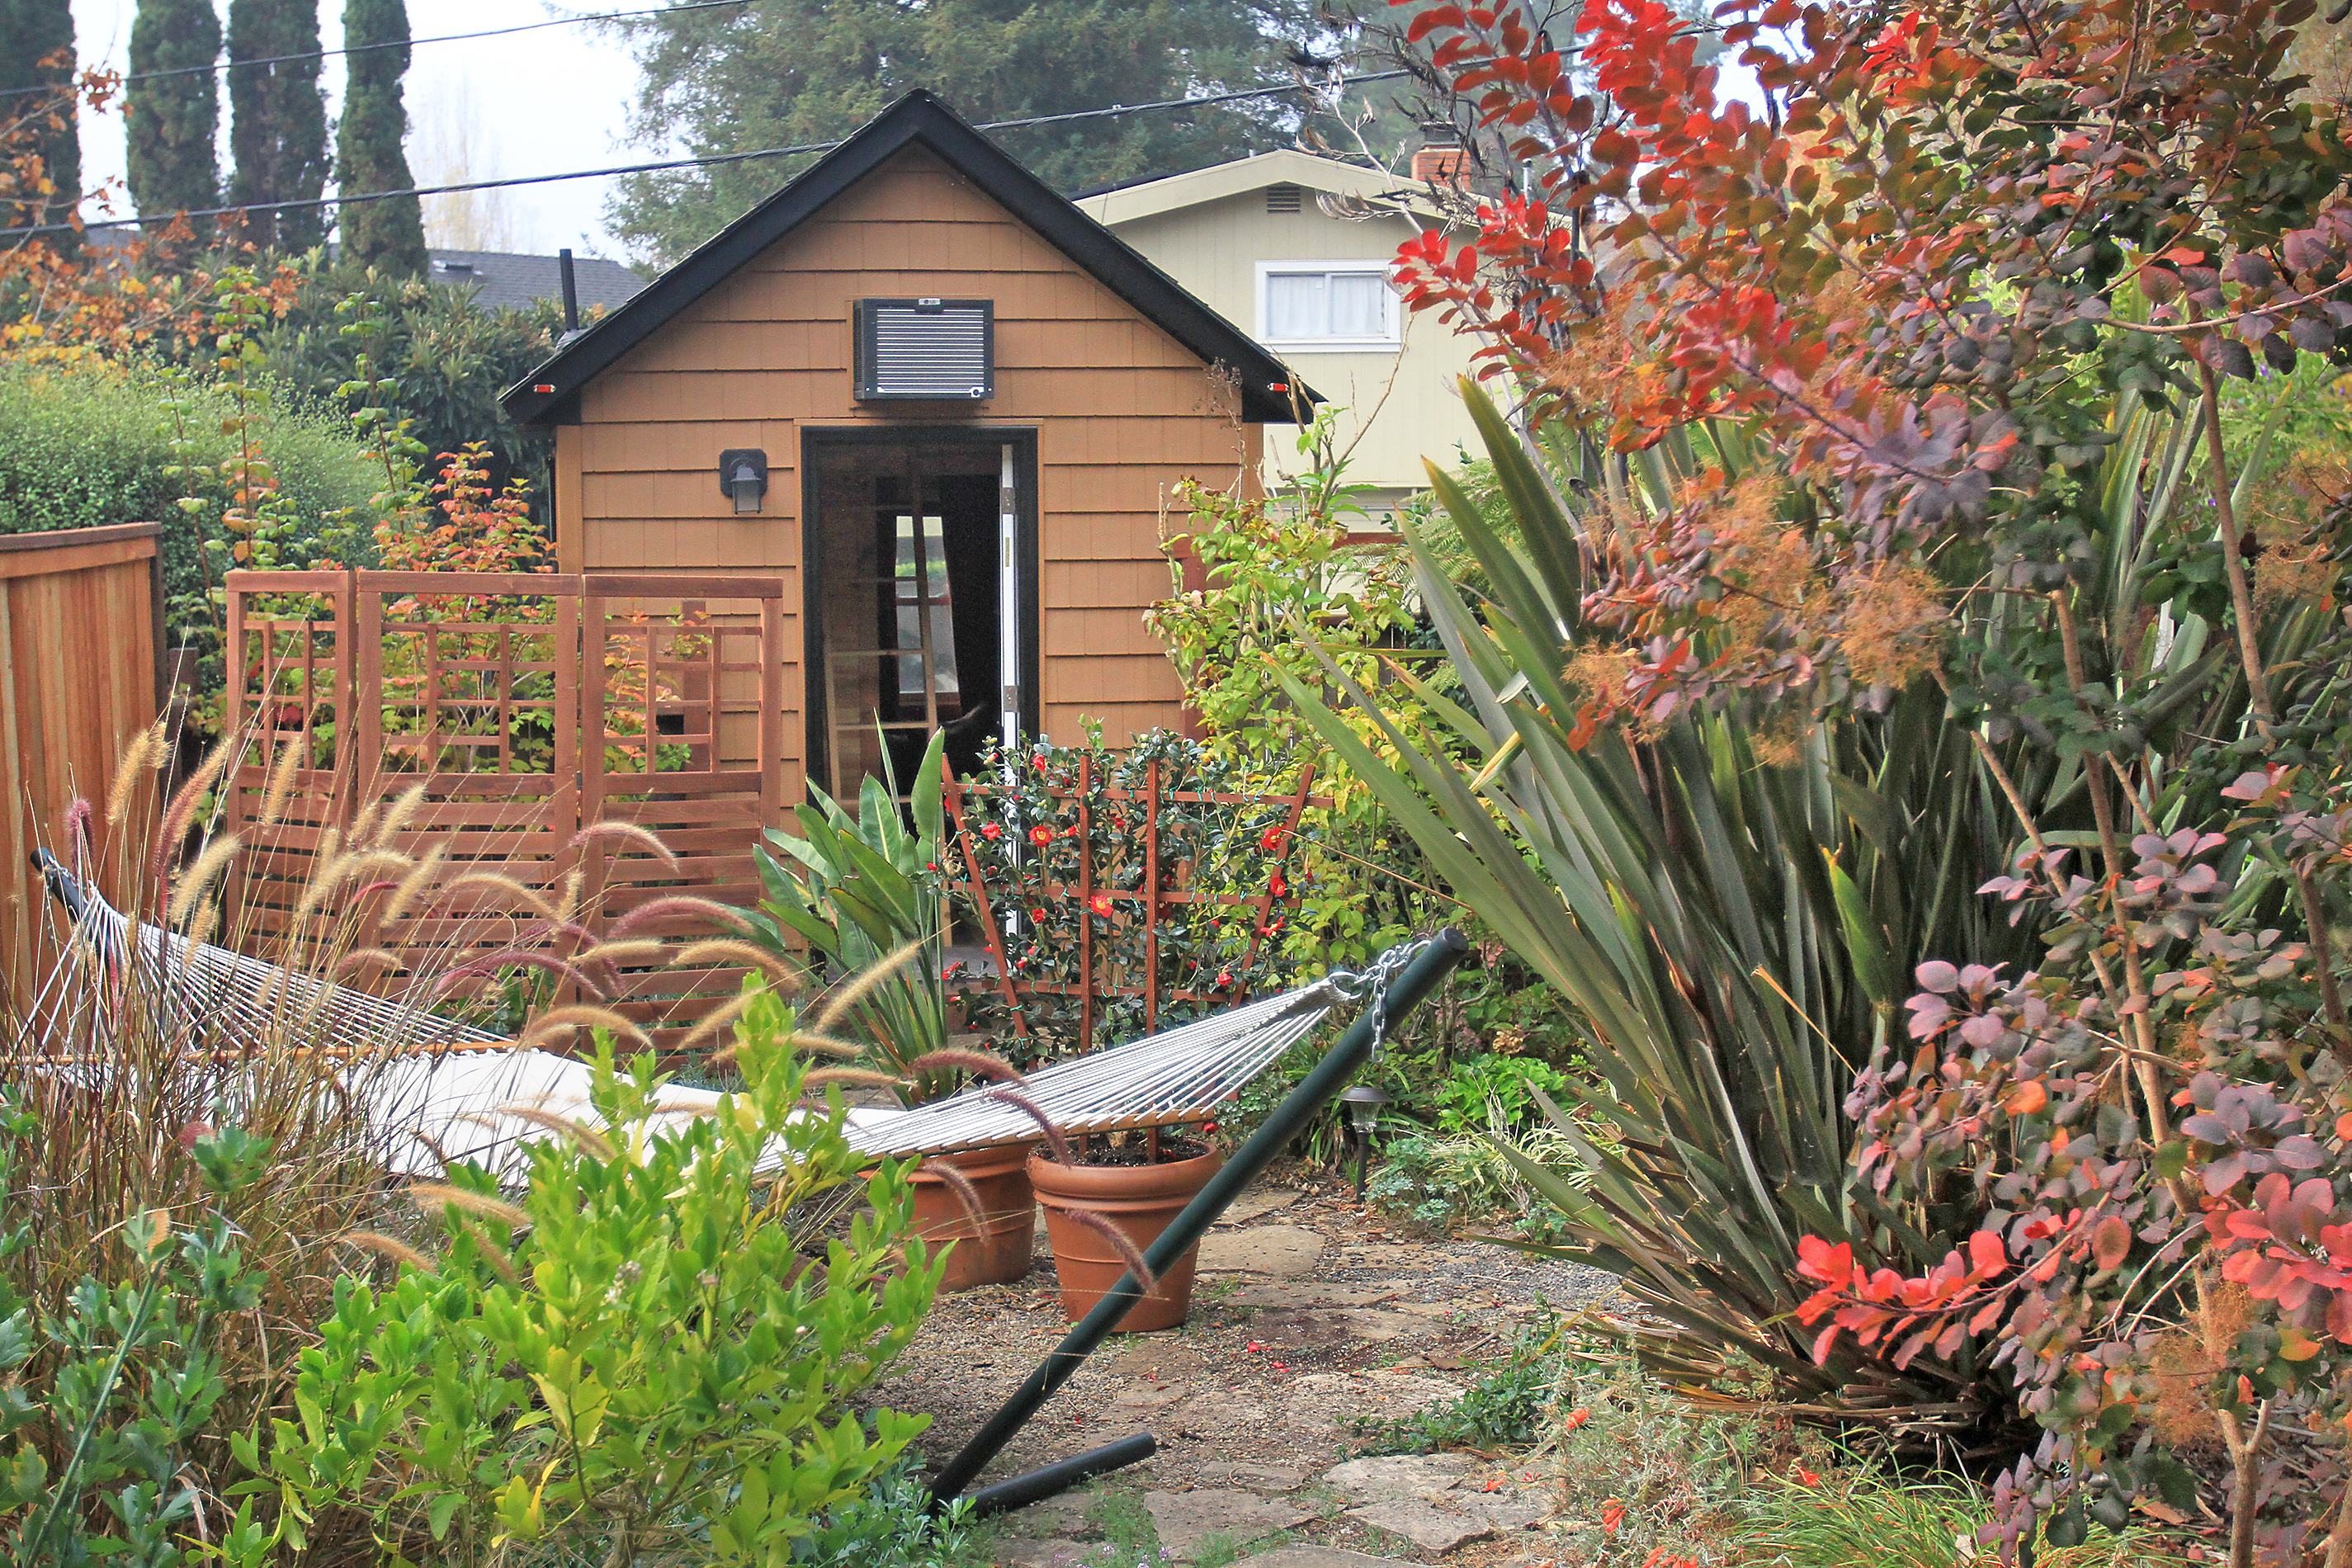 Cozy Tiny House Discounts For Longer Stays Tiny Houses For Rent In Mill Valley California United States